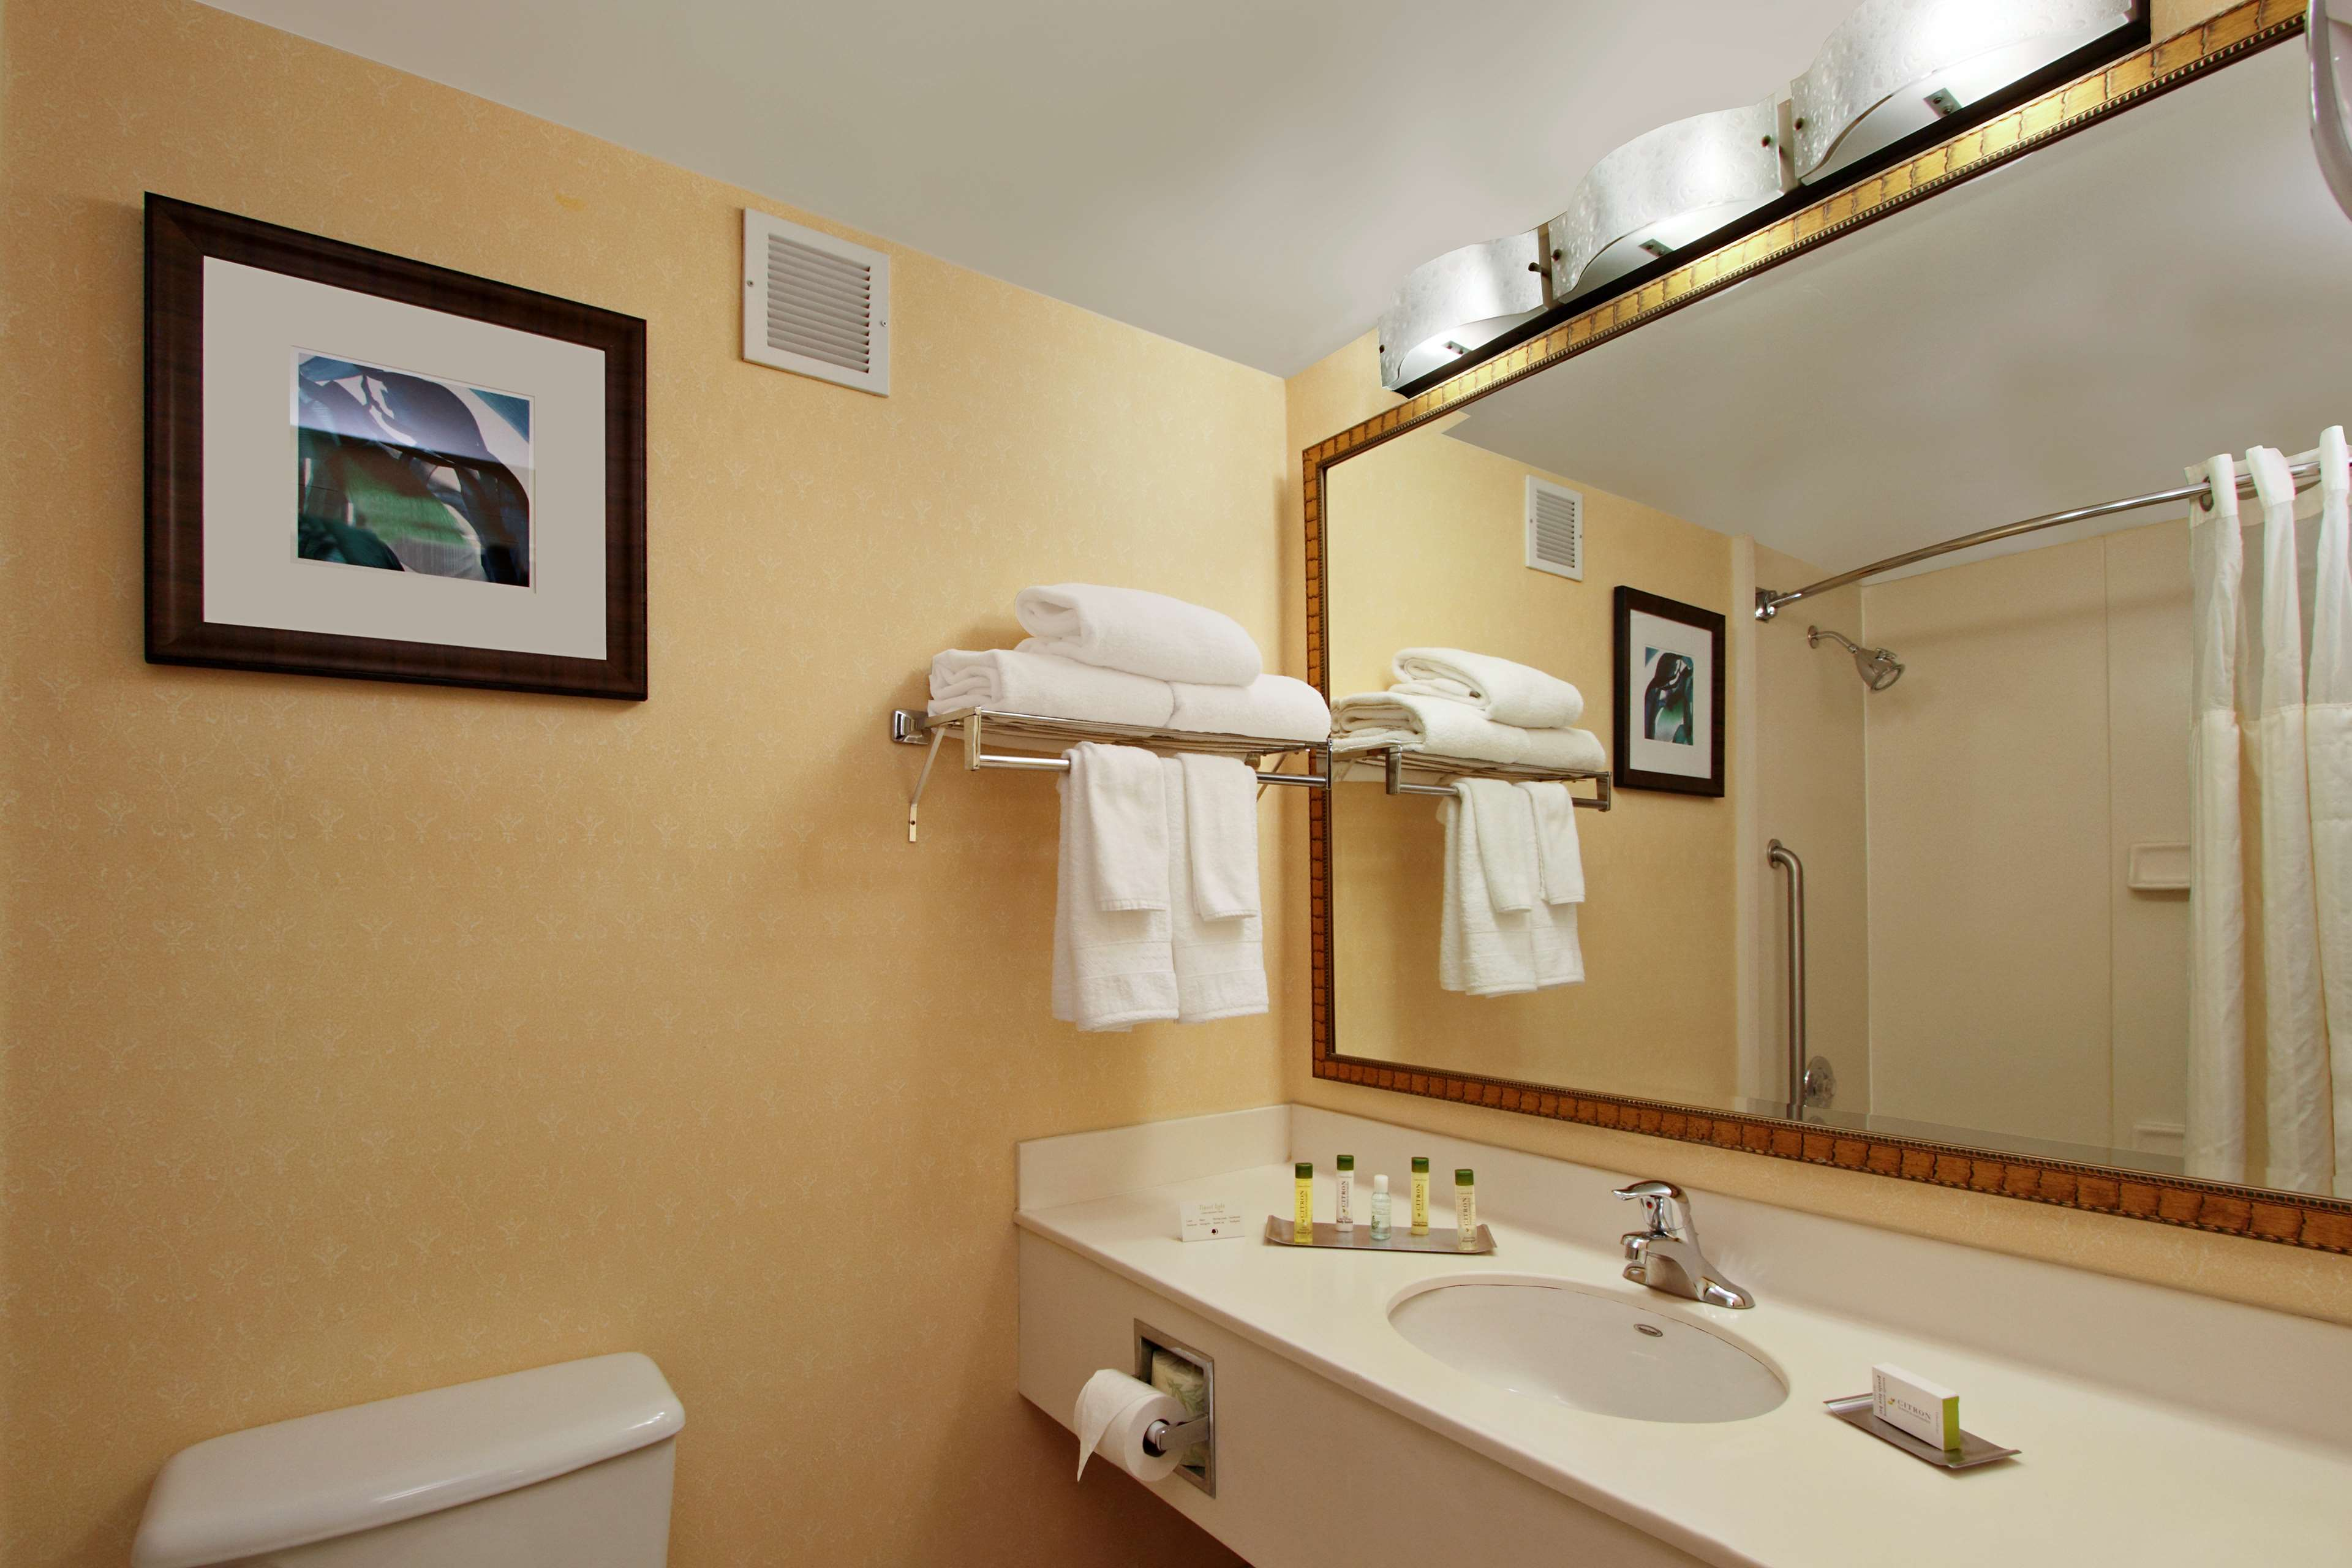 DoubleTree by Hilton Hotel Mahwah image 23